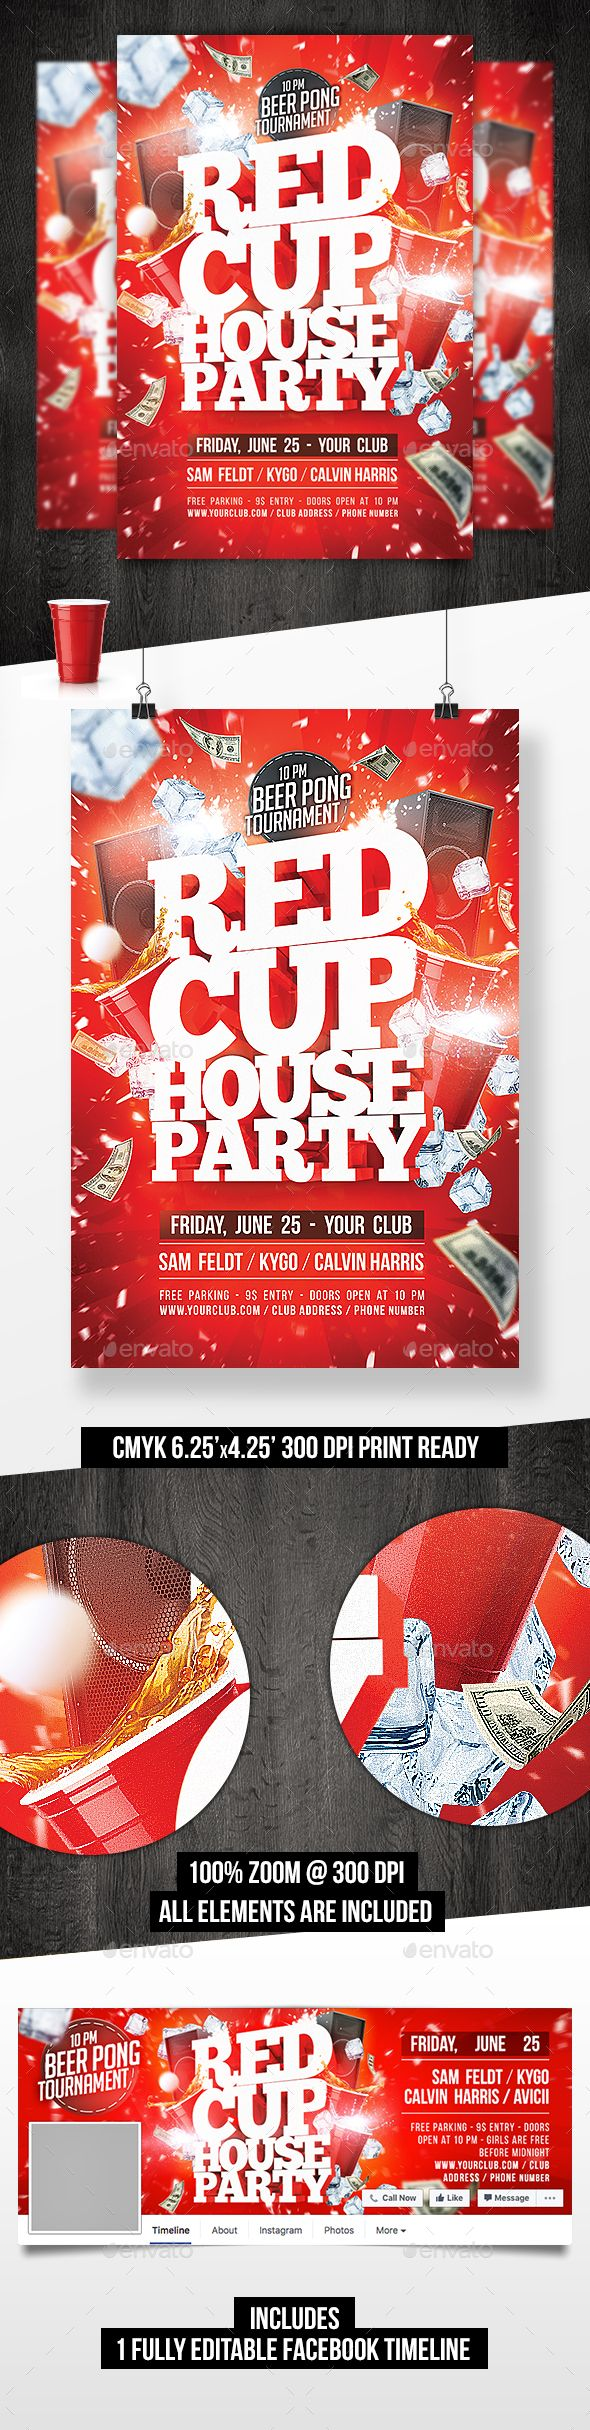 Red cup house party flyer template facebook timeline party red cup house party flyer template facebook timeline saigontimesfo